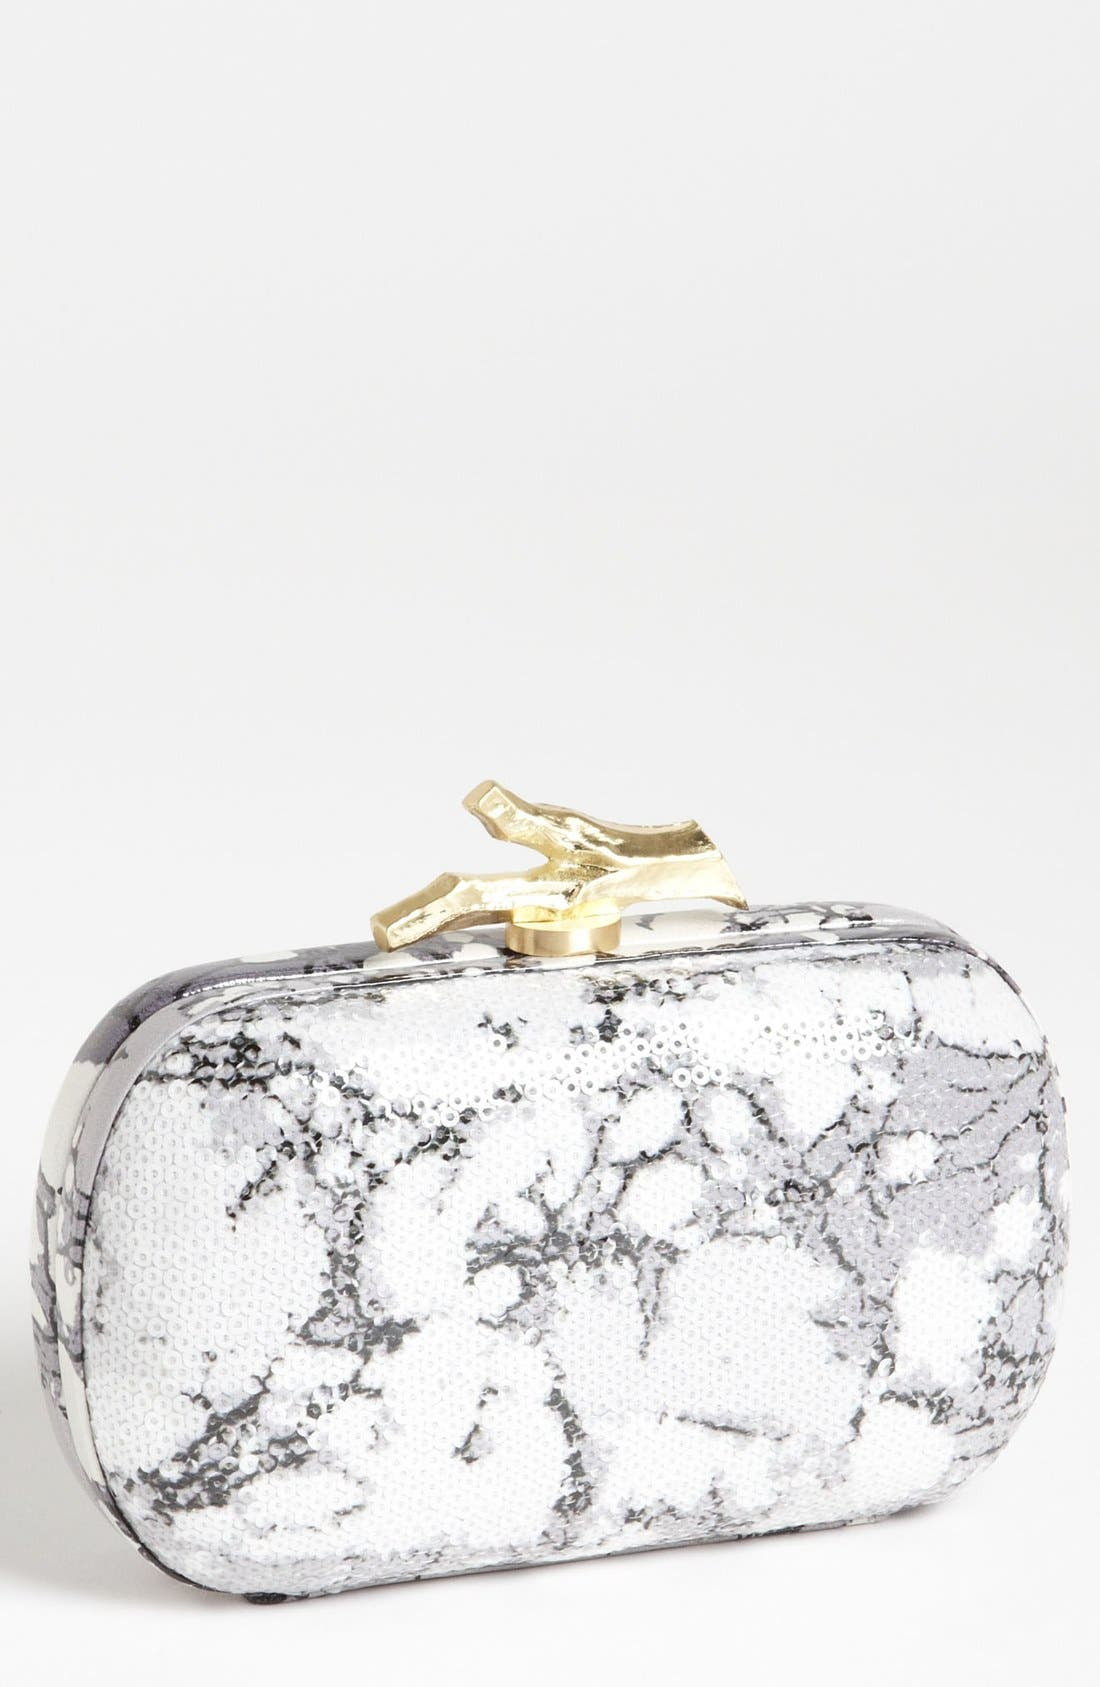 Alternate Image 1 Selected - Diane von Furstenberg 'Lytton' Sequin Clutch